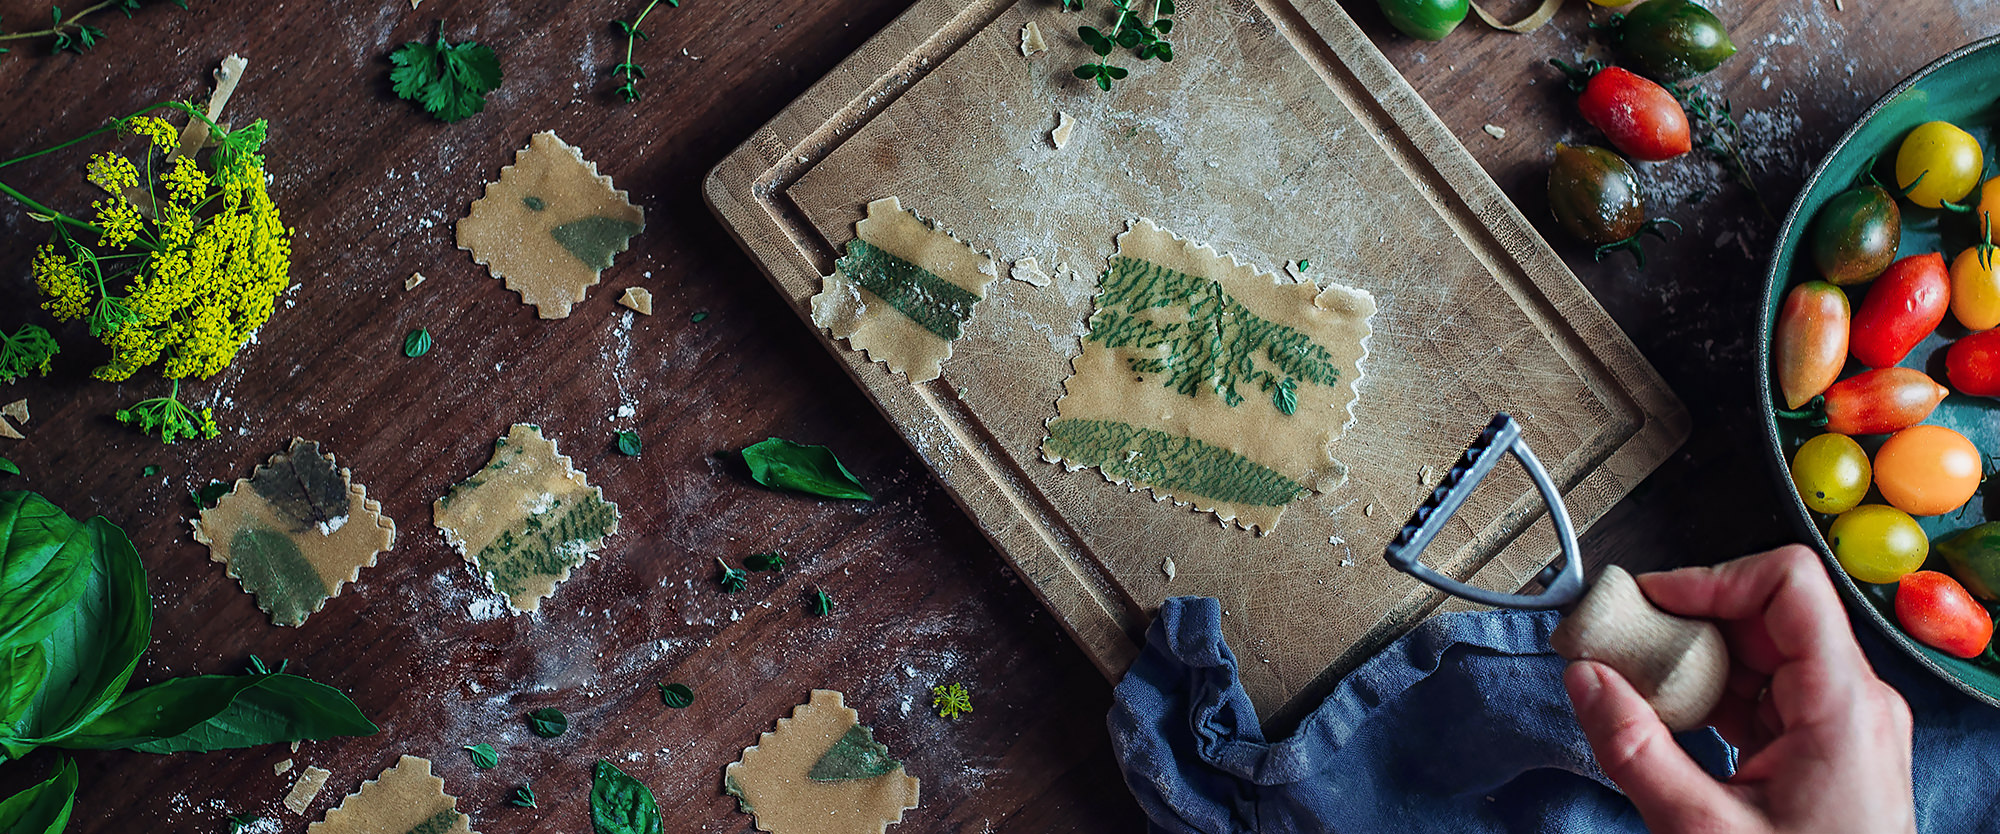 Homemade pasta with herbs